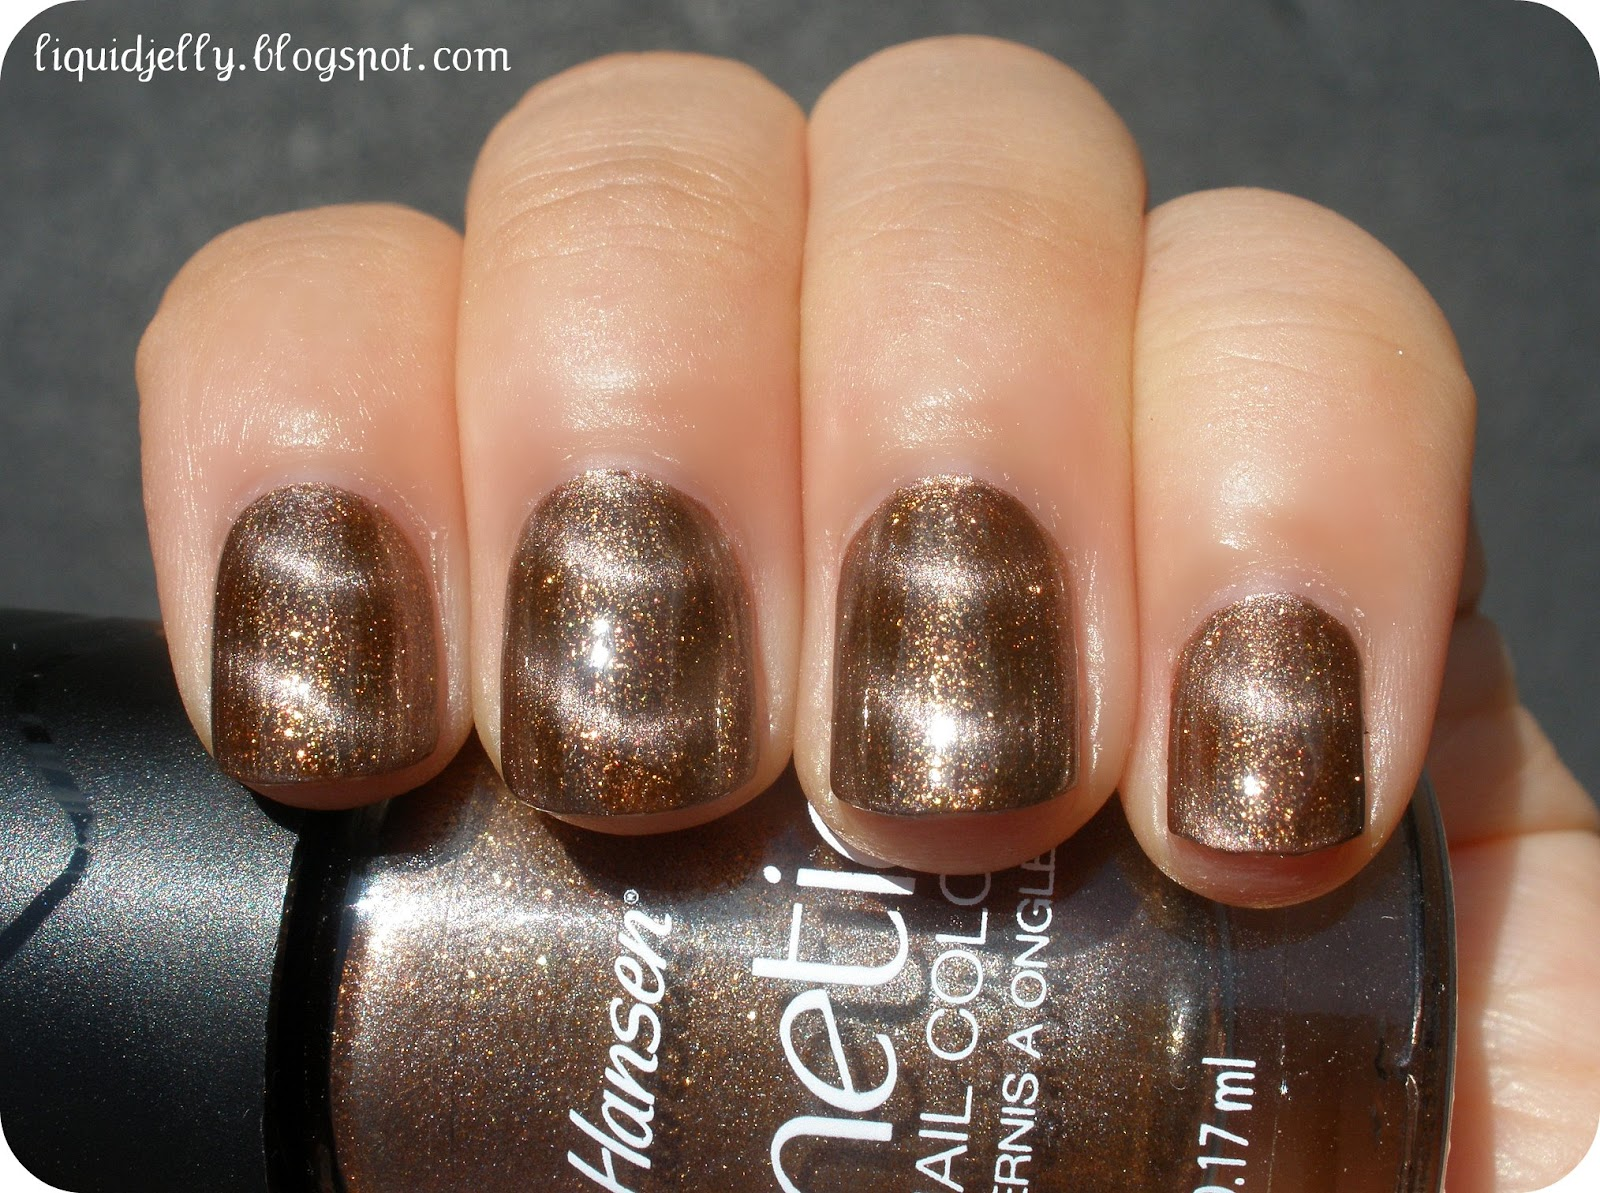 Liquid Jelly: Sally Hansen Magnetic Nail Color Swatches